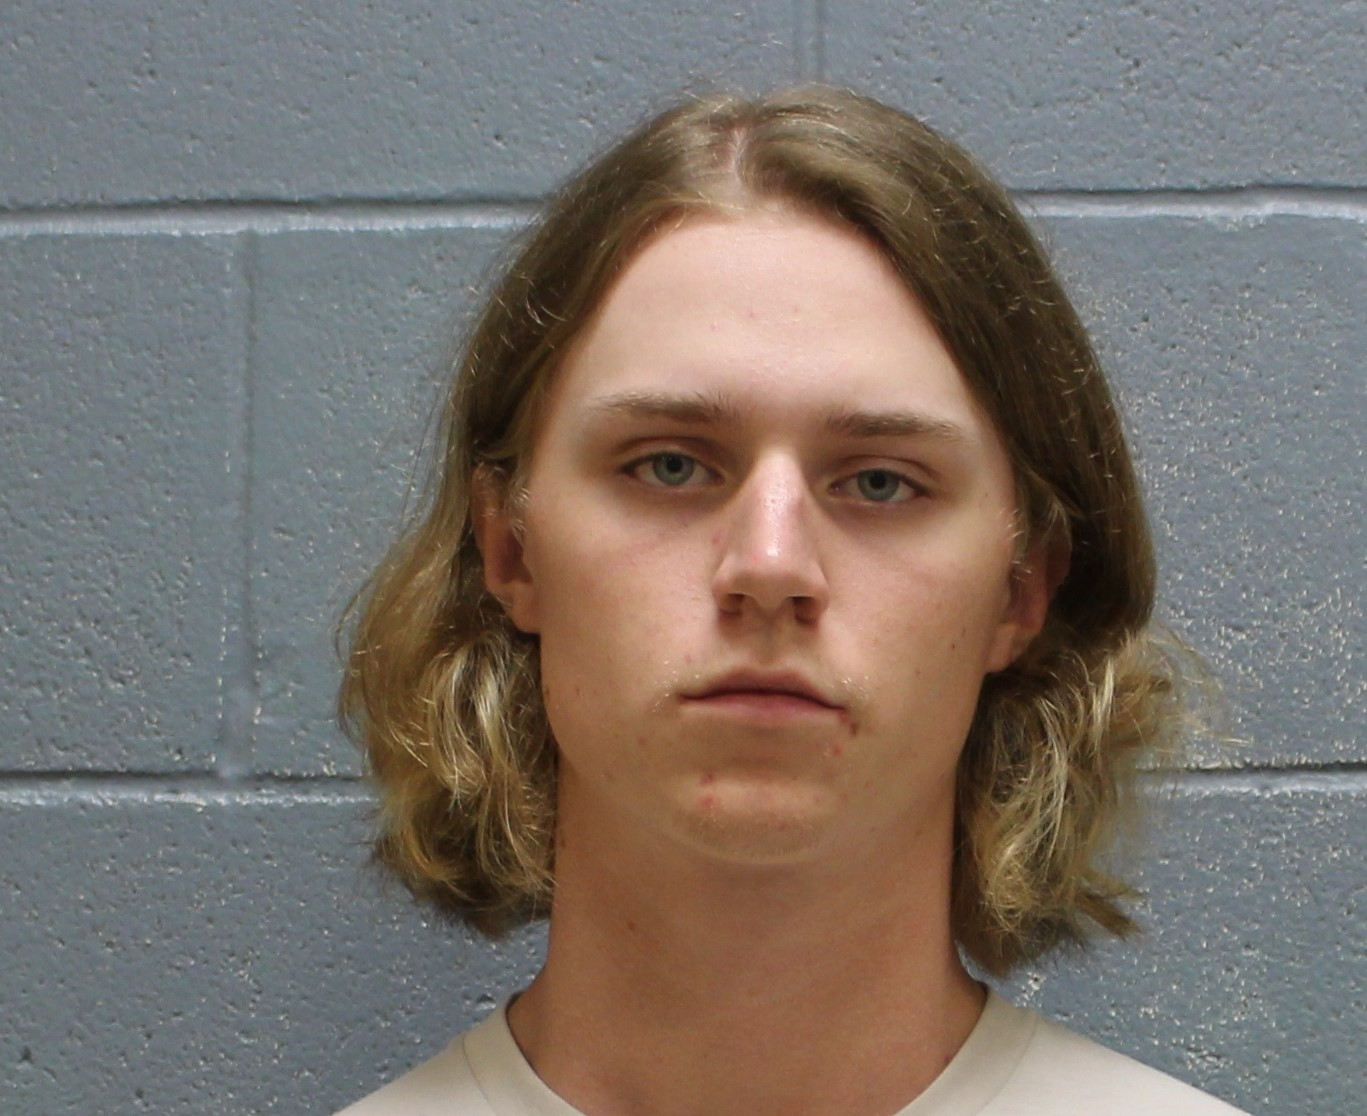 Jess Erwin Ralston, 20, is accused of attacking a 58-year-old Lyft driver in late September.